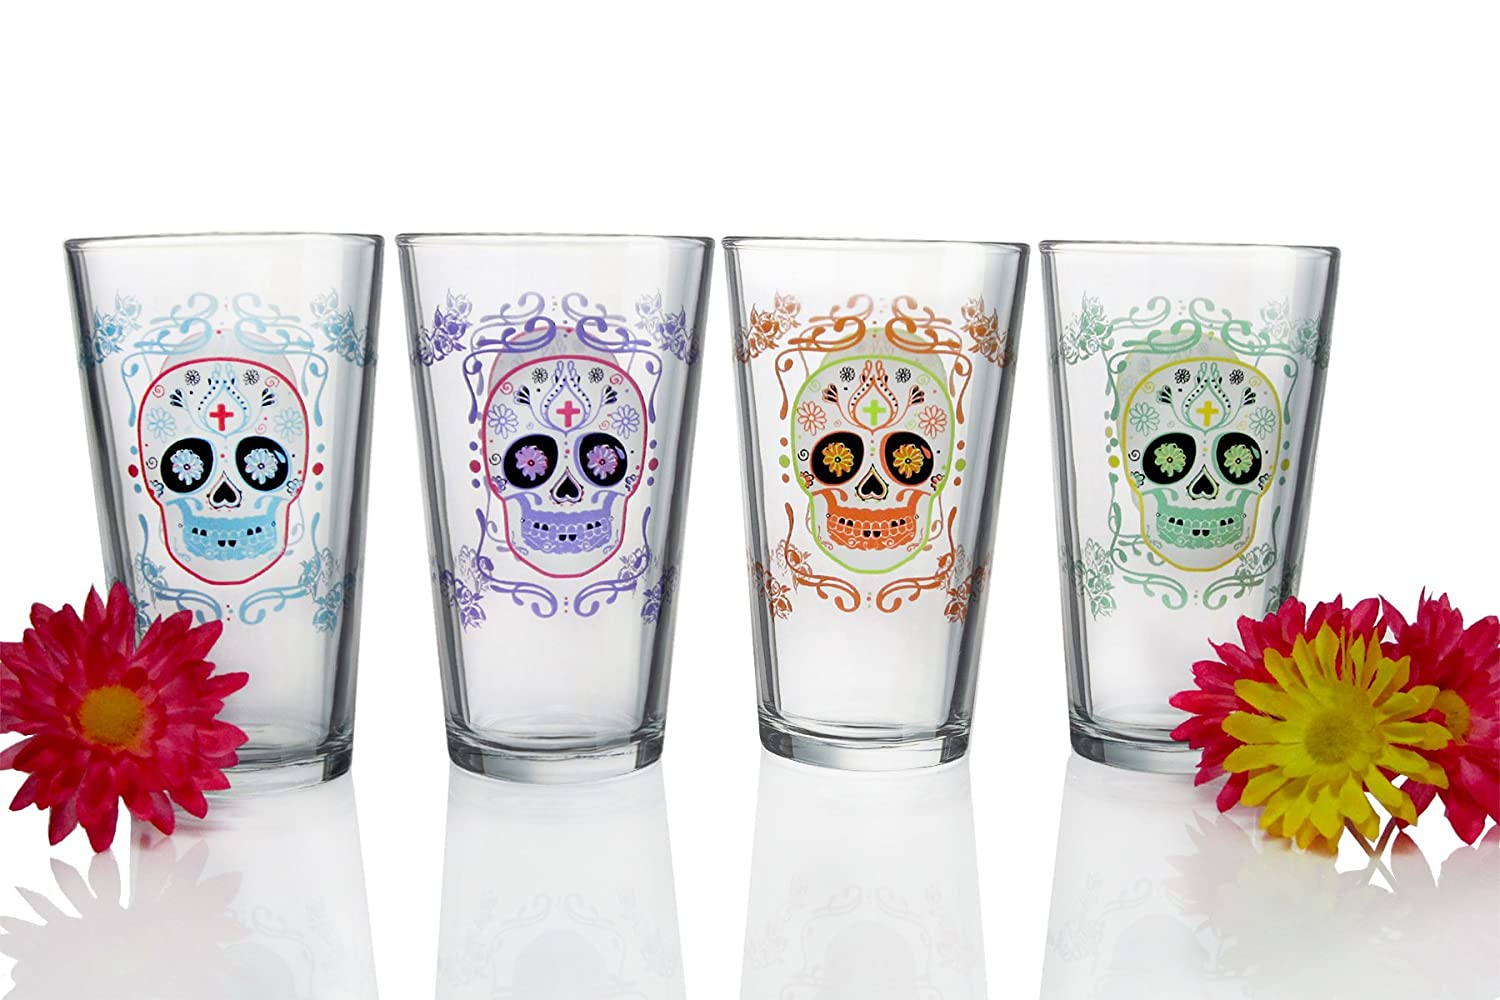 Luminarc Sugar Skulls Assorted Decorated Pub Glasses (Set of 4), 16 oz, Clear N2425